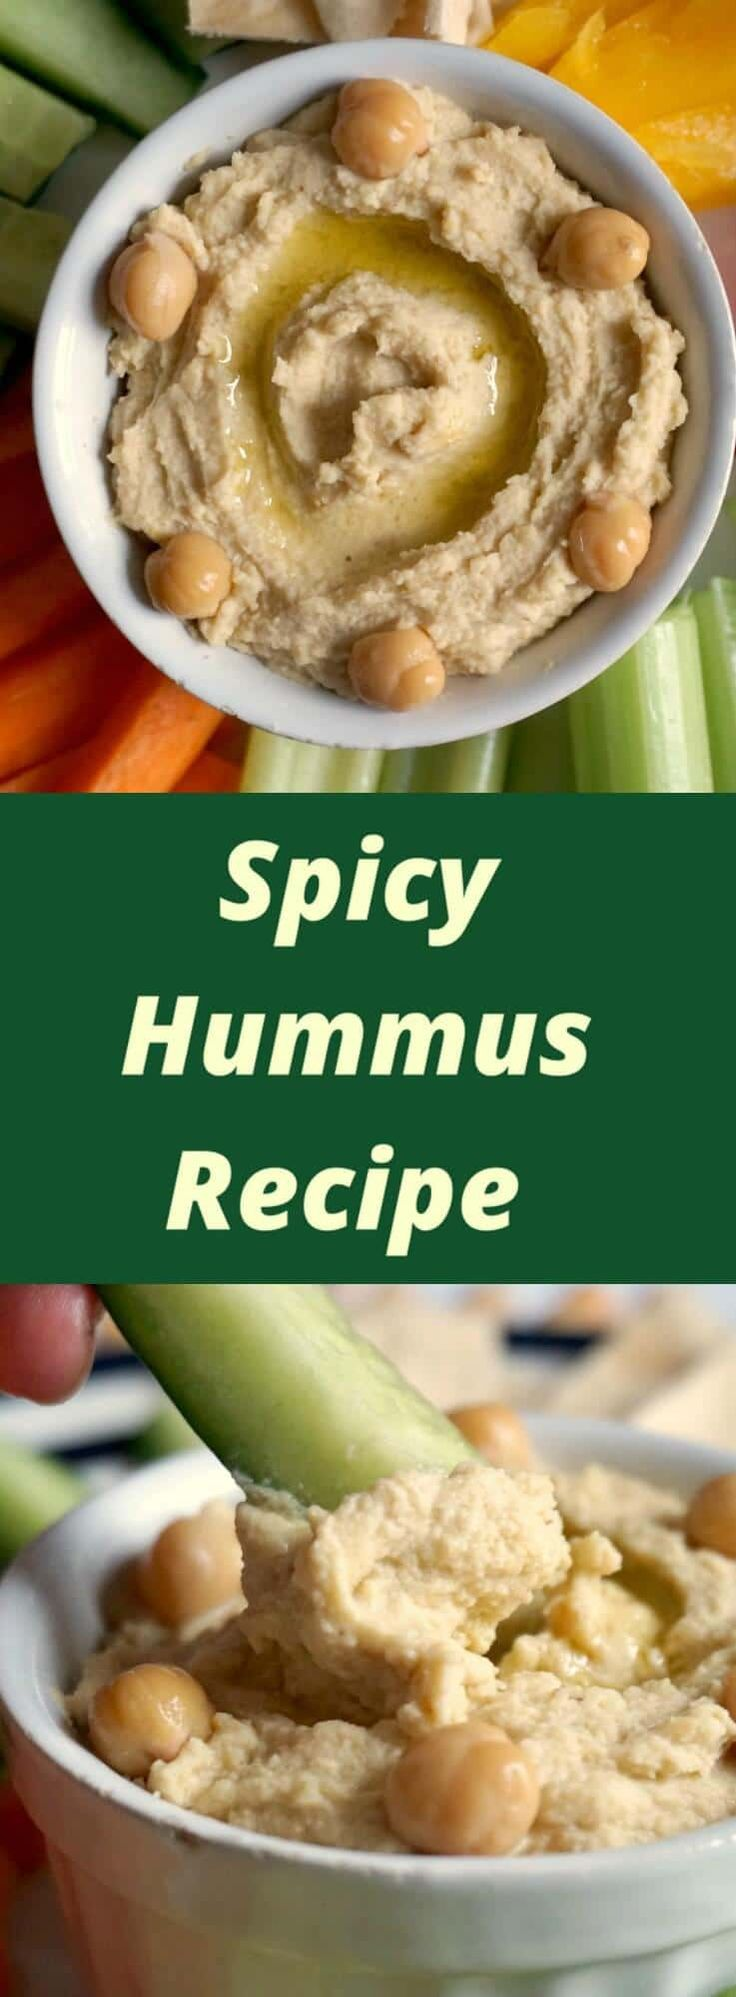 Spicy Hummus Recipe With Tahini, a delightful vegan appetizer for all tastes. Super healthy, nutritious, it makes a great healthy snack for kids and grown-ups alike. Serve with vegetable sticks or pitta bread. #hummus , #vegansnack, healthysnack, #easyappetizer, #appetizer ,